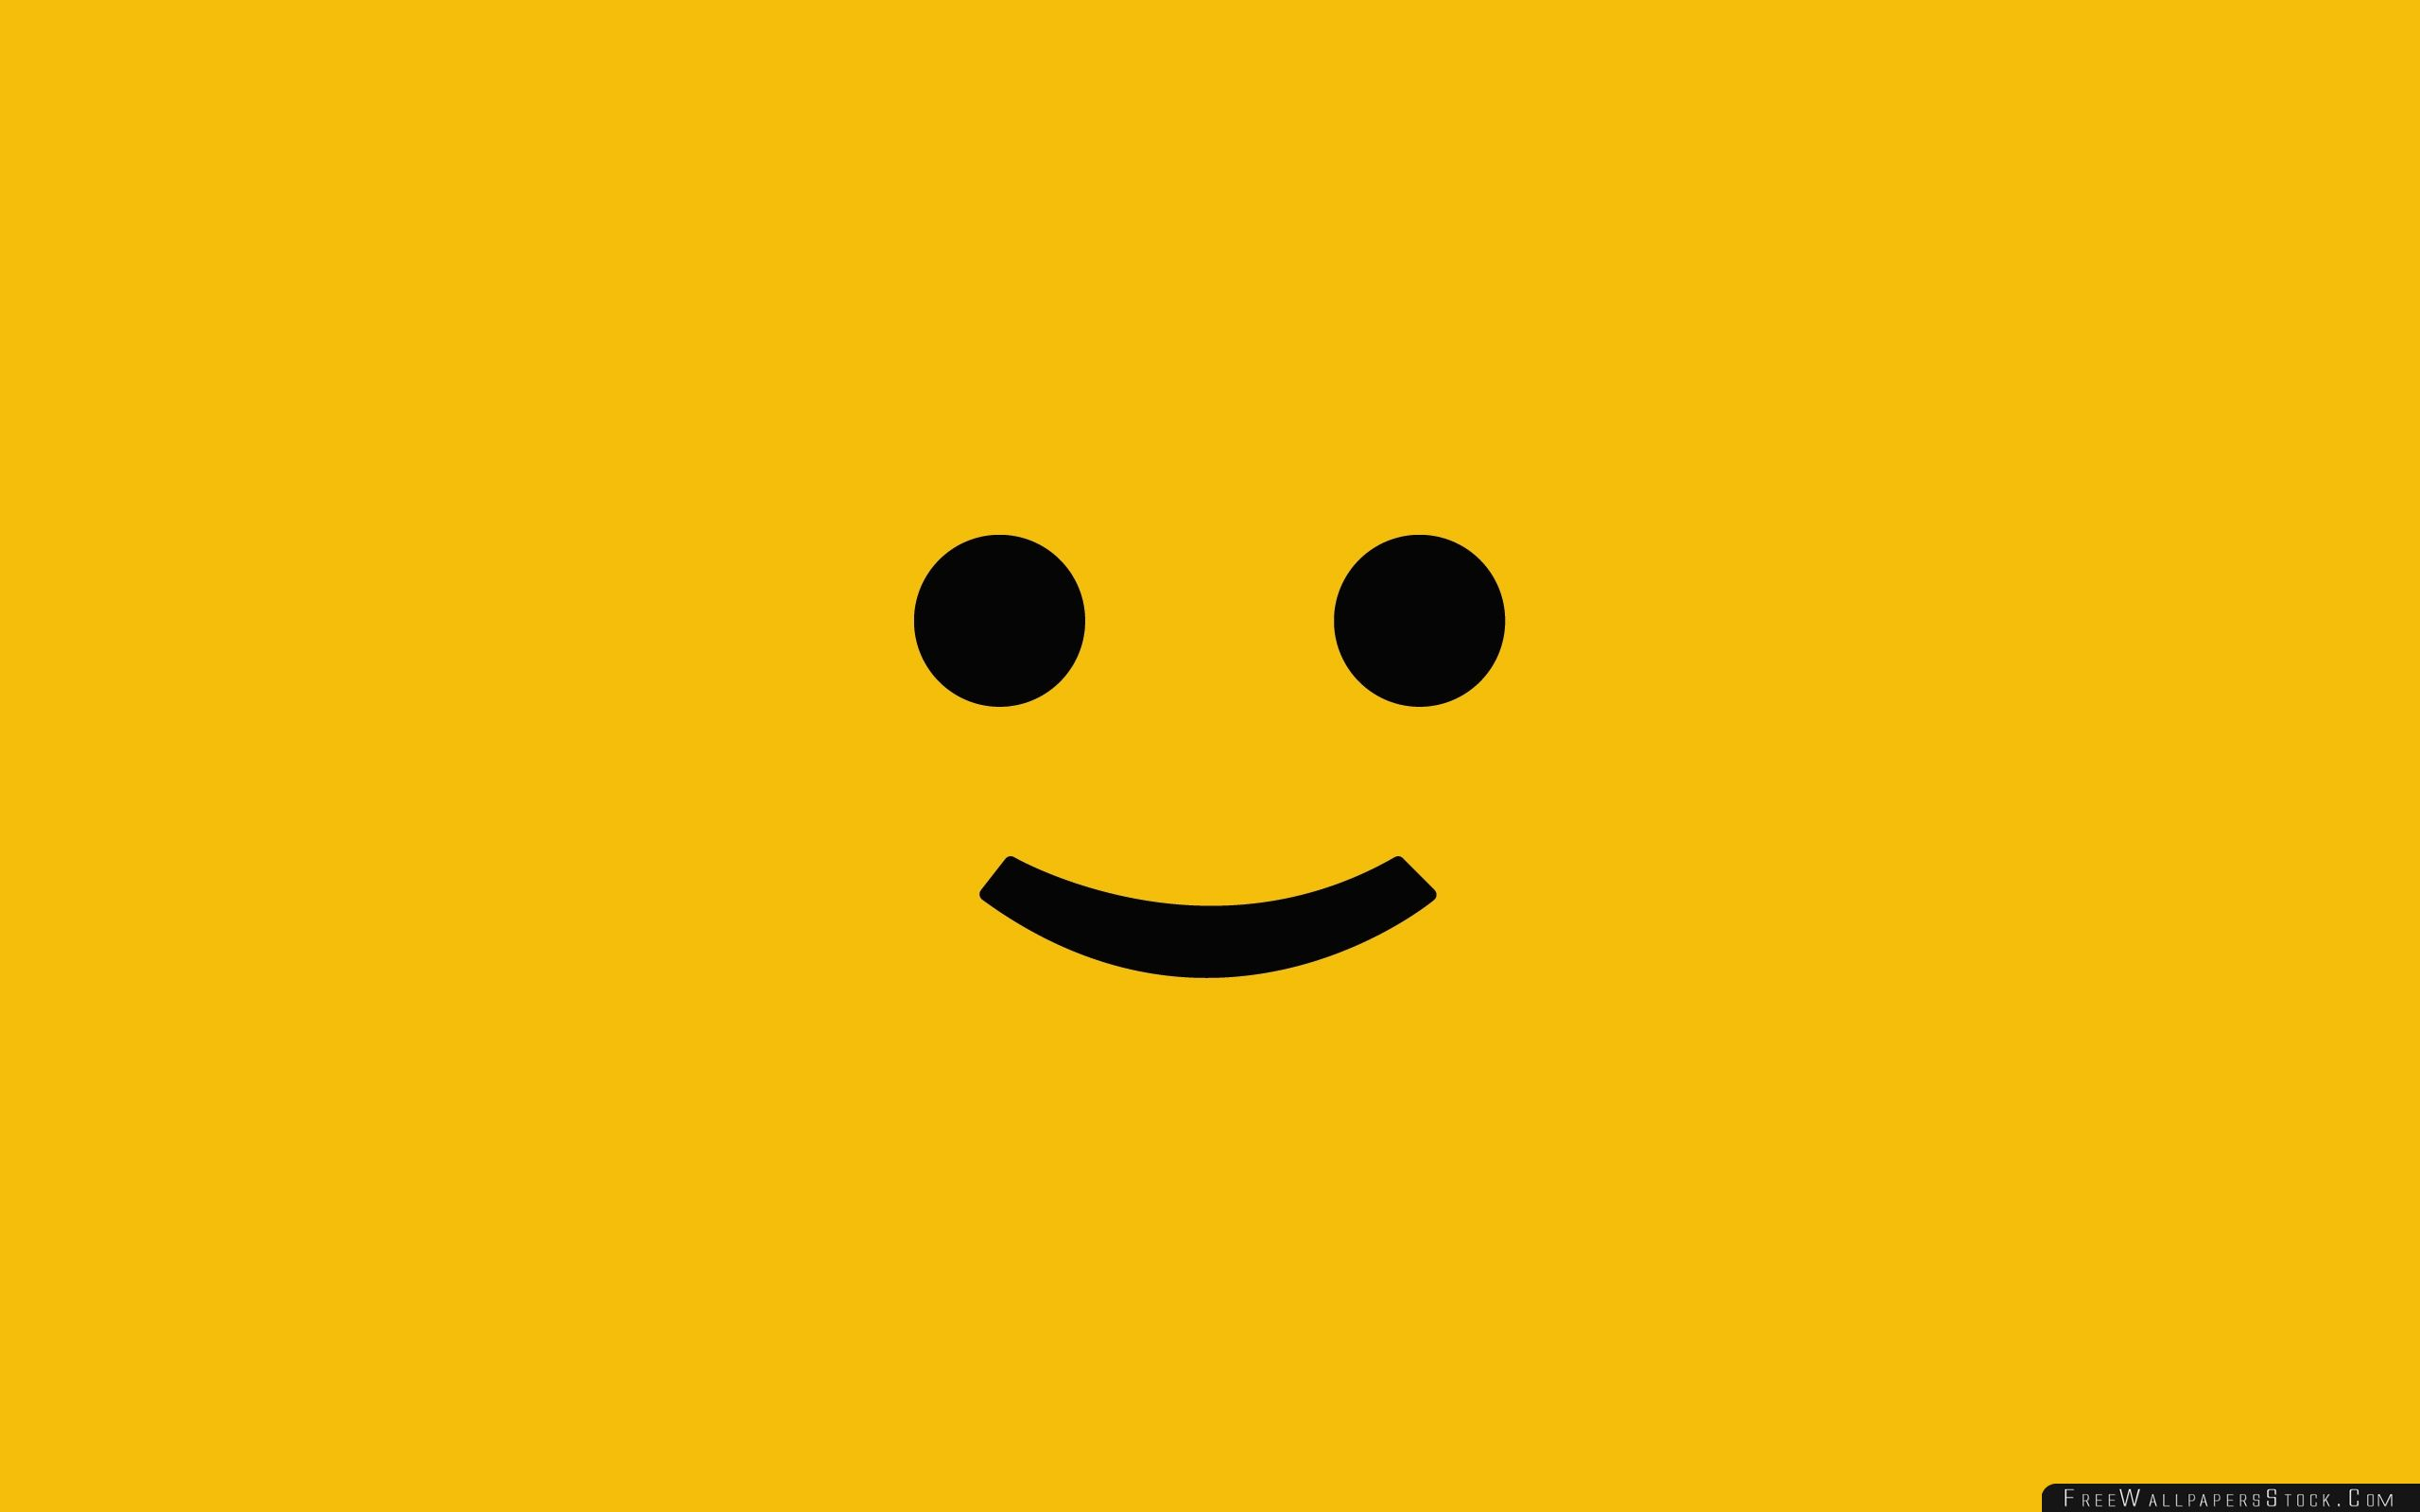 Download Free Wallpaper Smiley Face Background